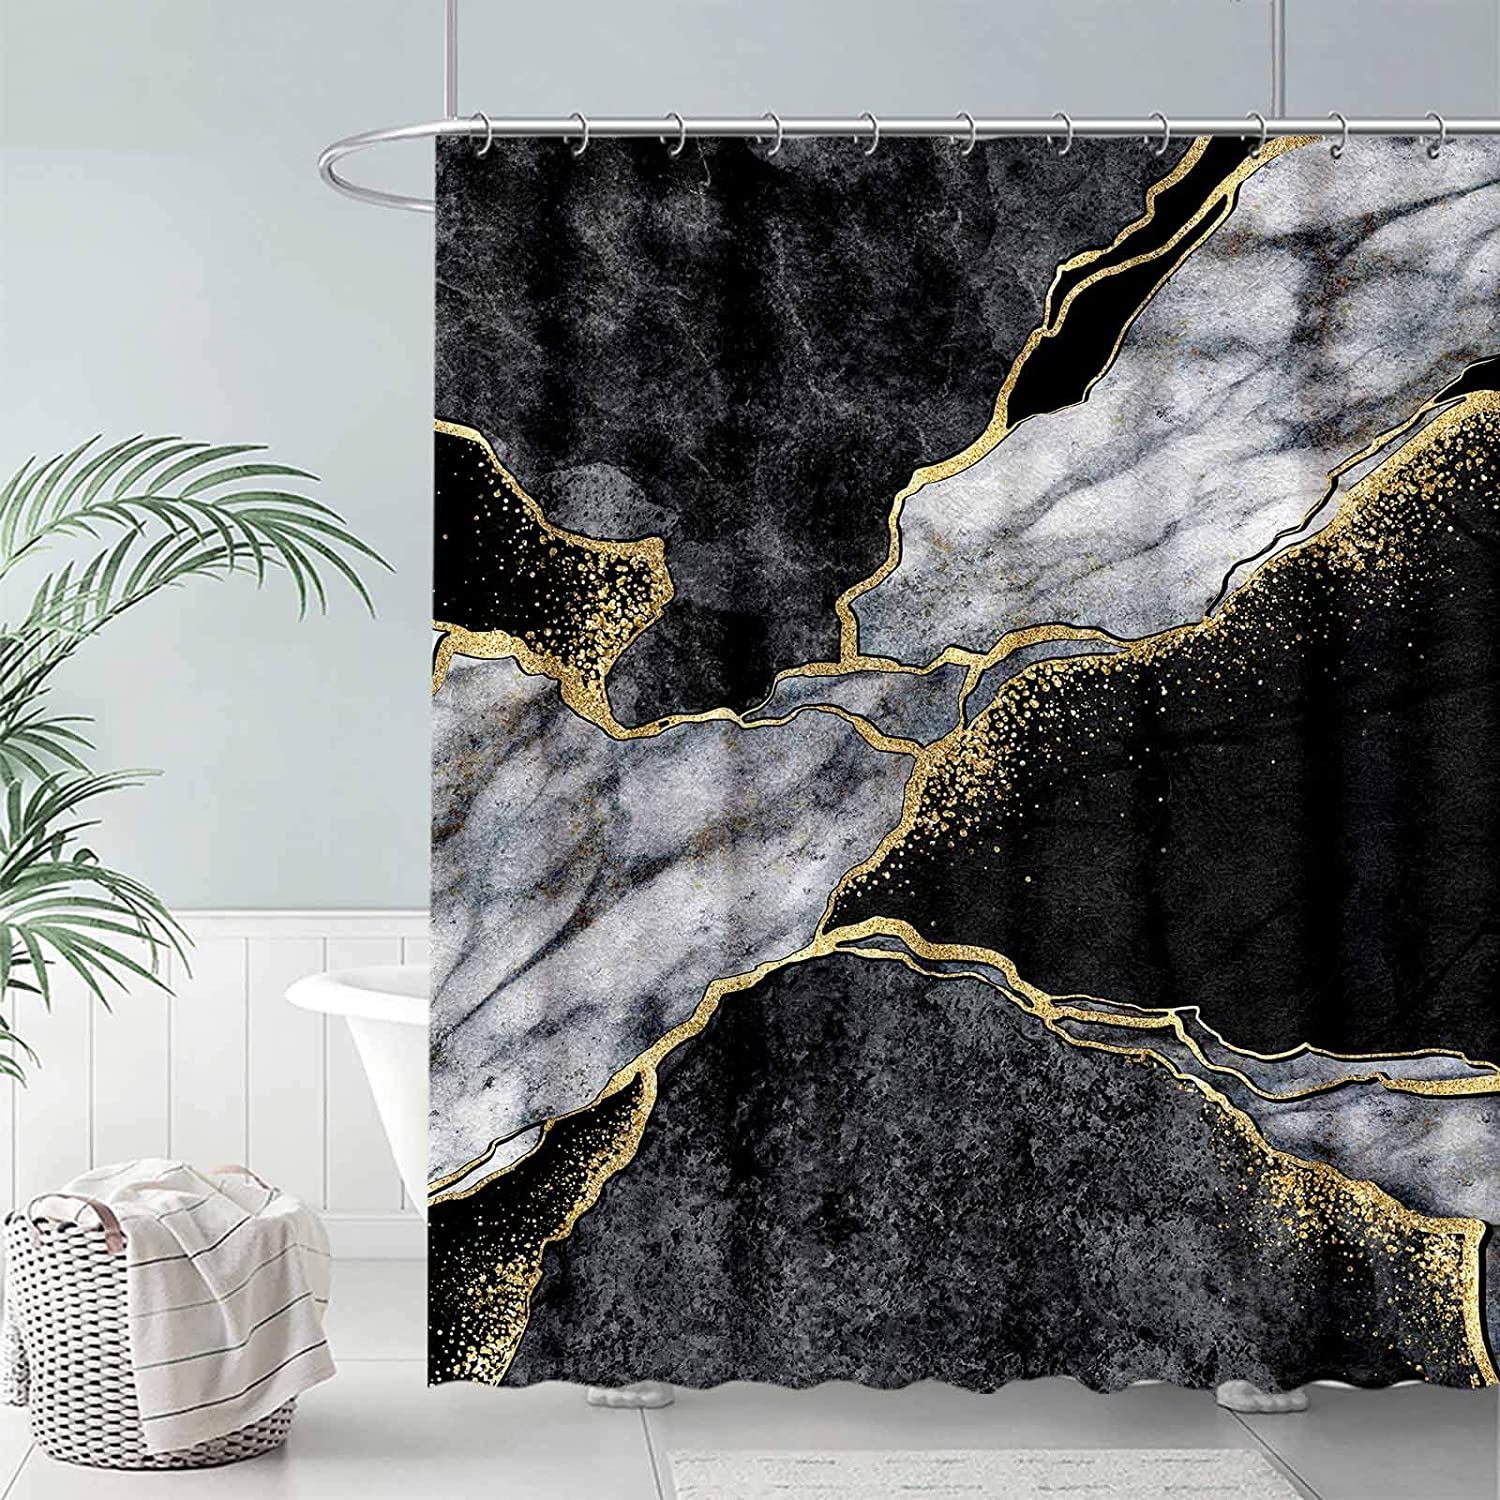 FULLSAIL Black and White Marble Texture Shower Curtain Set Gold Abstract Art Pattern Bathroom Bathtubs Decor with 12 Hooks Easy Care Waterproof with Washable Durable Polyester Fabric 72